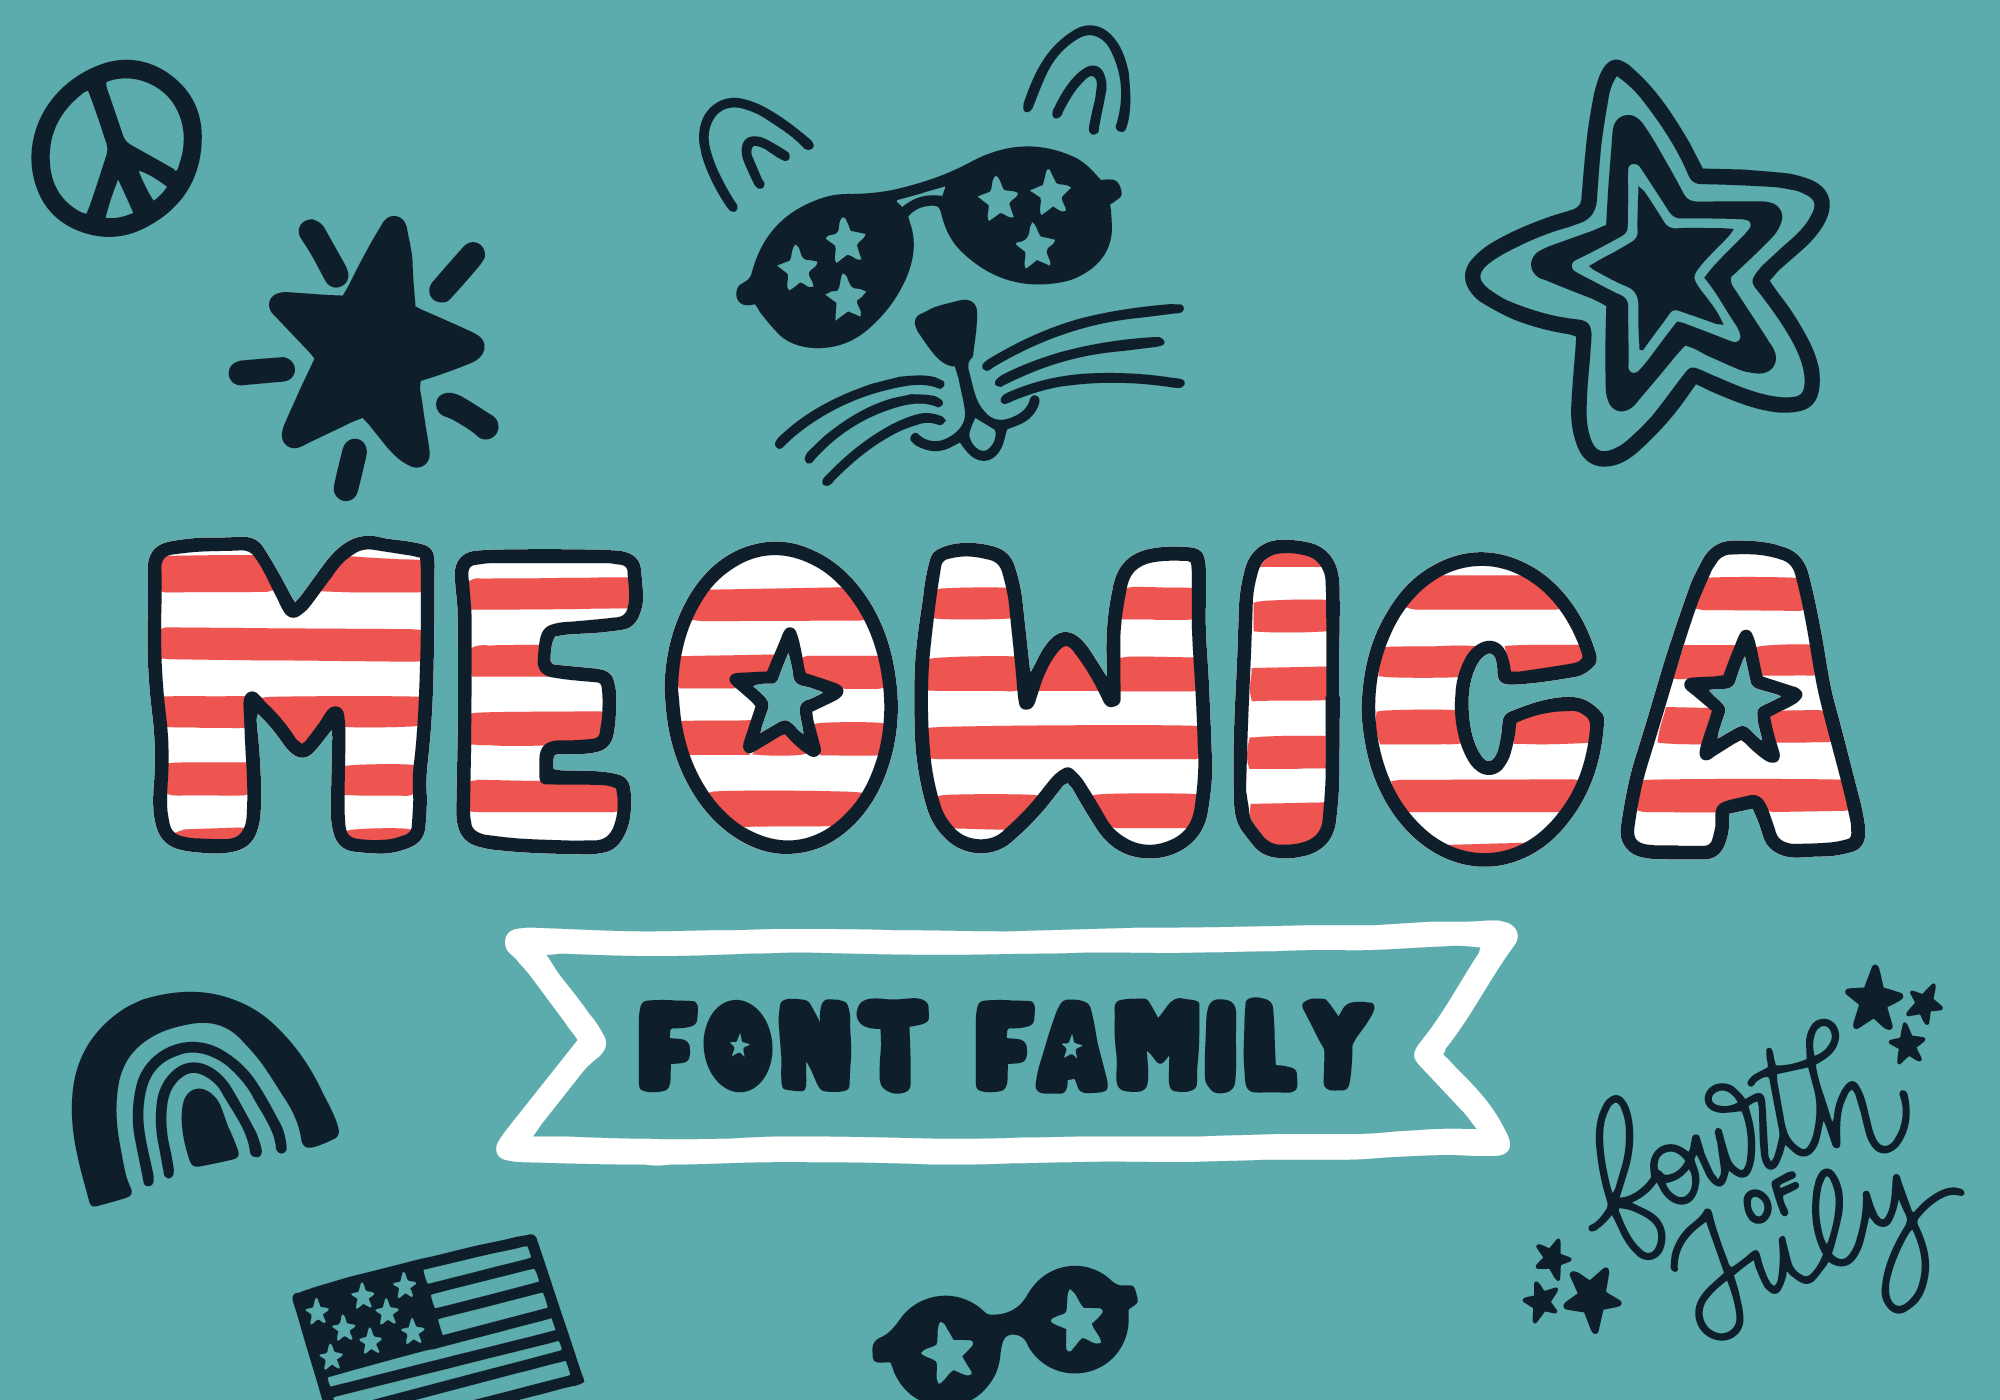 Download Free Meowica Font By The Pretty Letters Creative Fabrica for Cricut Explore, Silhouette and other cutting machines.